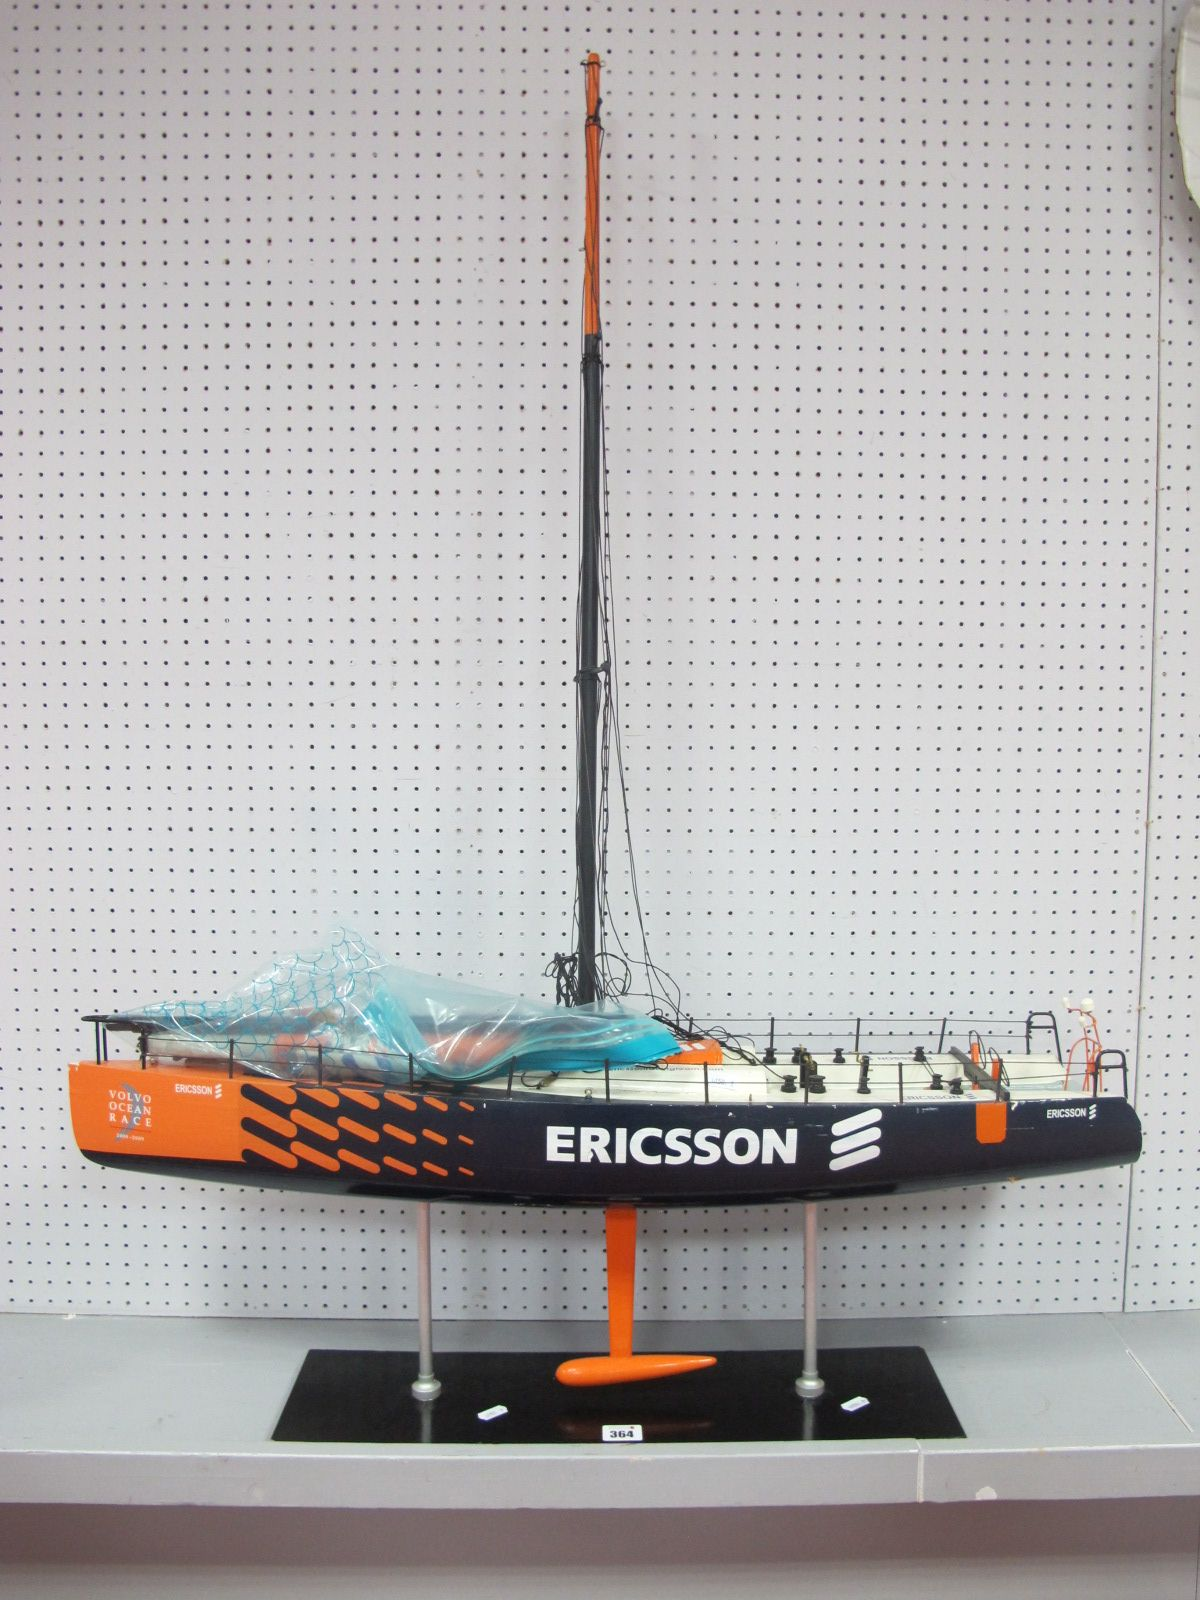 A Static Display Model of a Volvo Ocean Race Competitor, with Ericsson blade, orange livery,